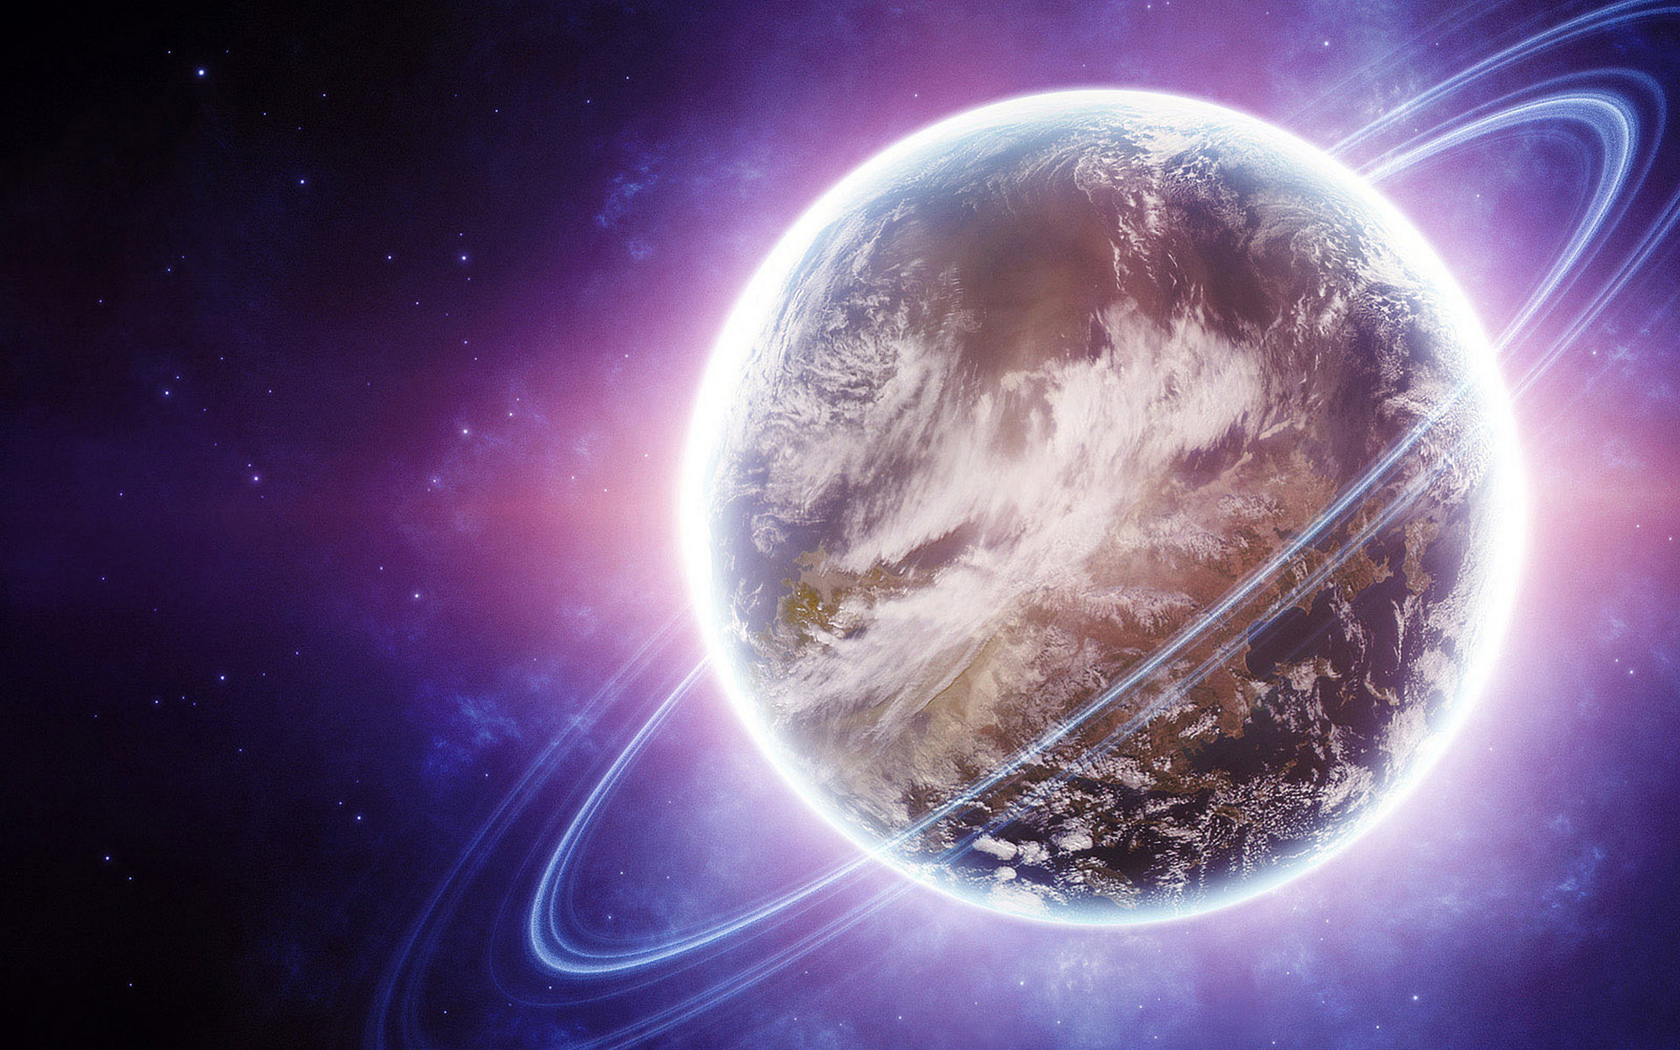 sci fi, planet, violet and lights, ring